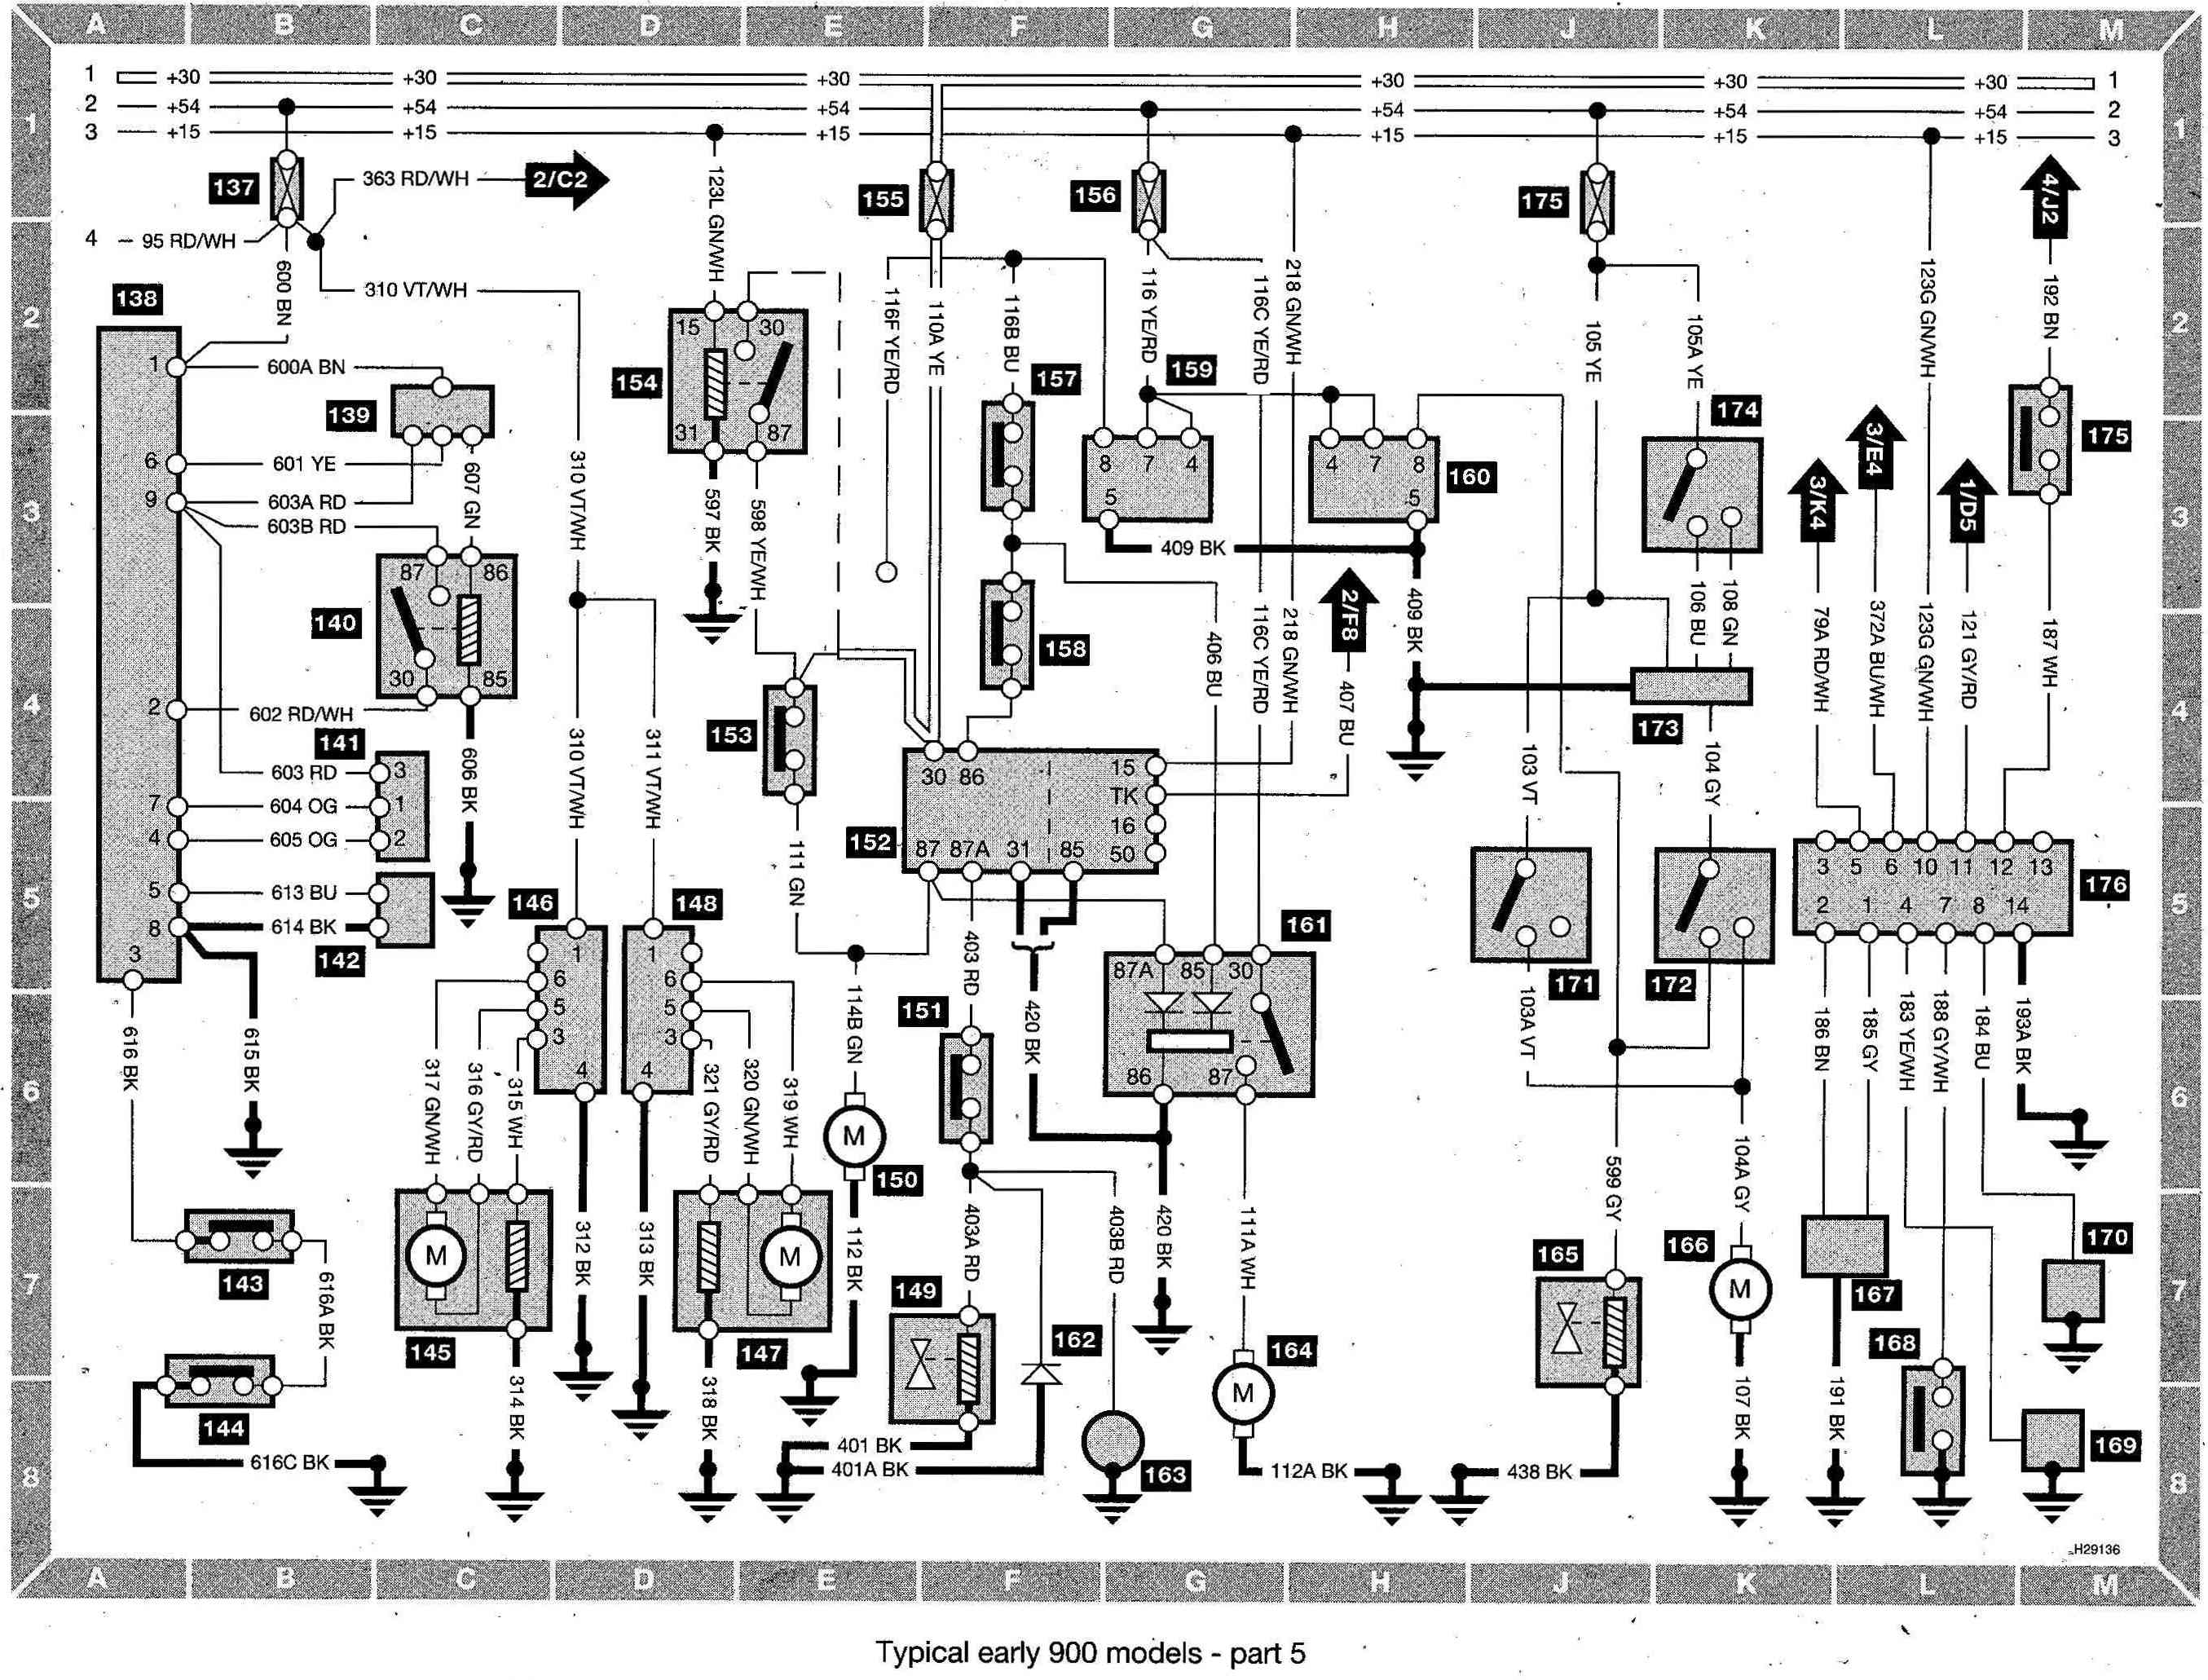 saab wiring diagram 9 5 wiring diagram schematics chevy metro wiring diagram saab wiring diagrams wiring diagram schematics saab 9 5 power lock diagram index of saab saab